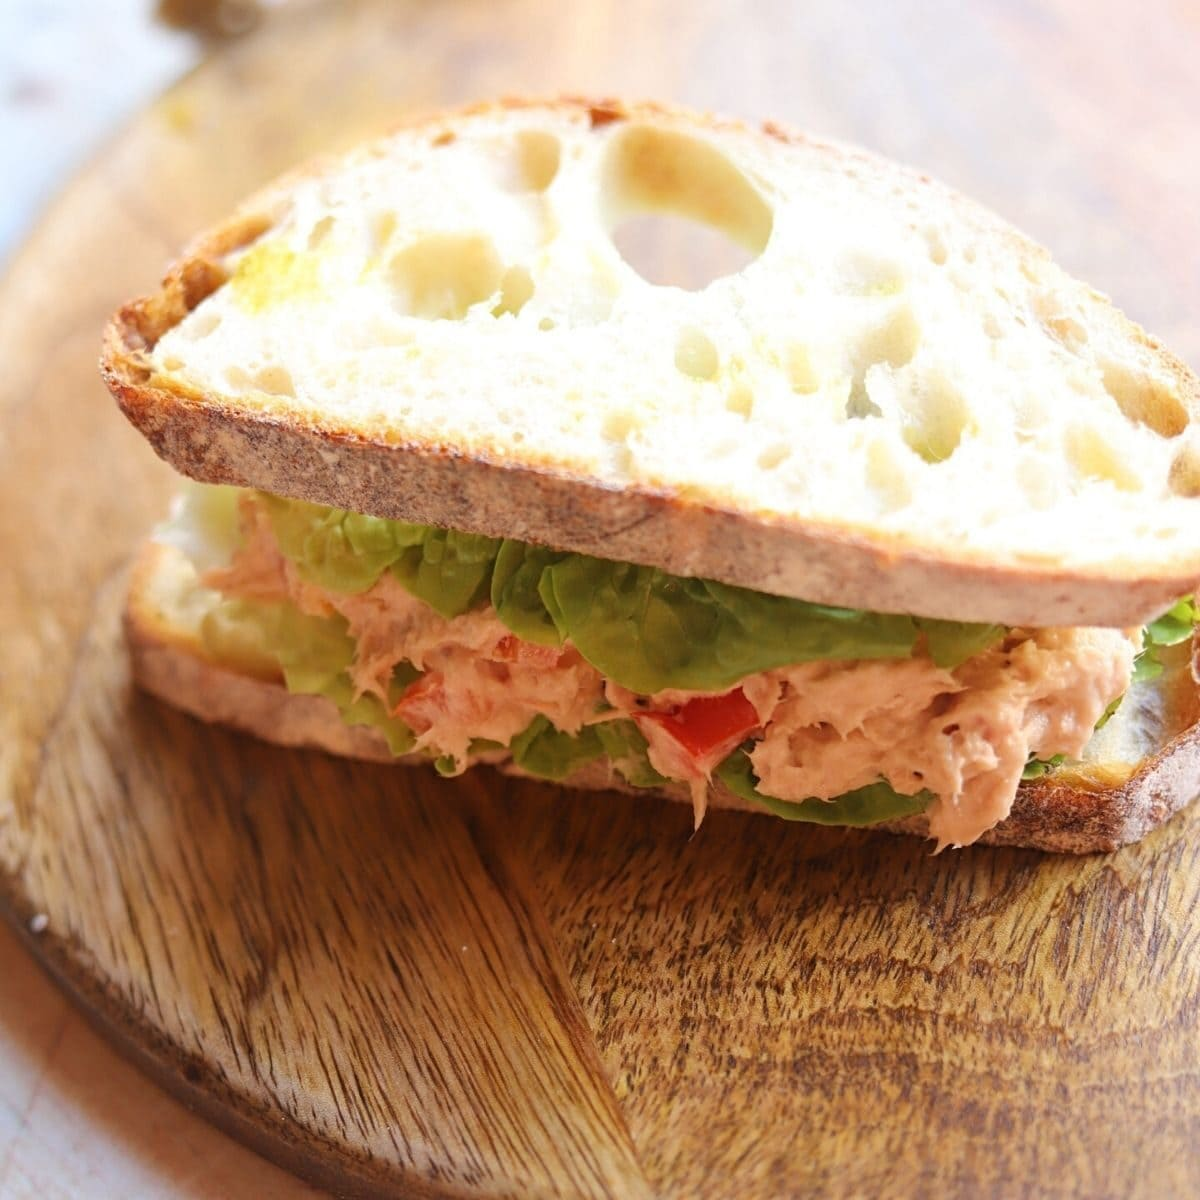 Full sandwich with tuna mix and lettuce.